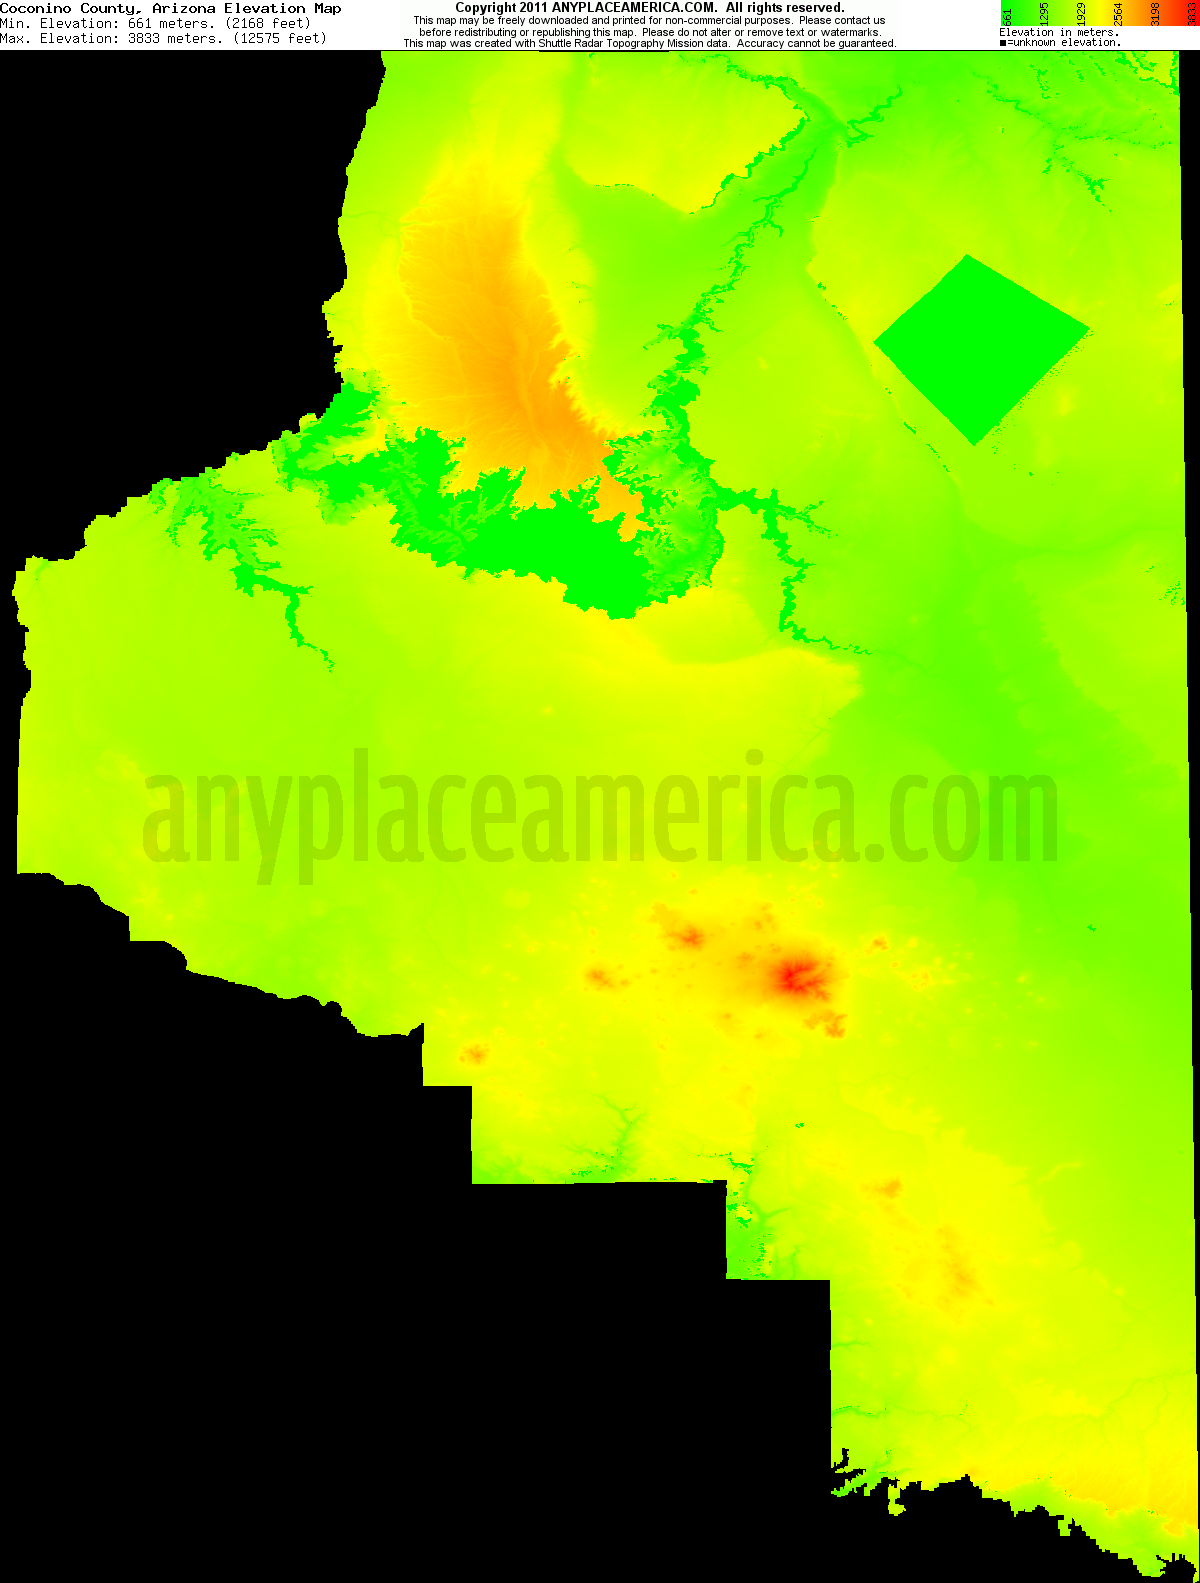 Arizona coconino county leupp - Download Coconino County Elevation Map